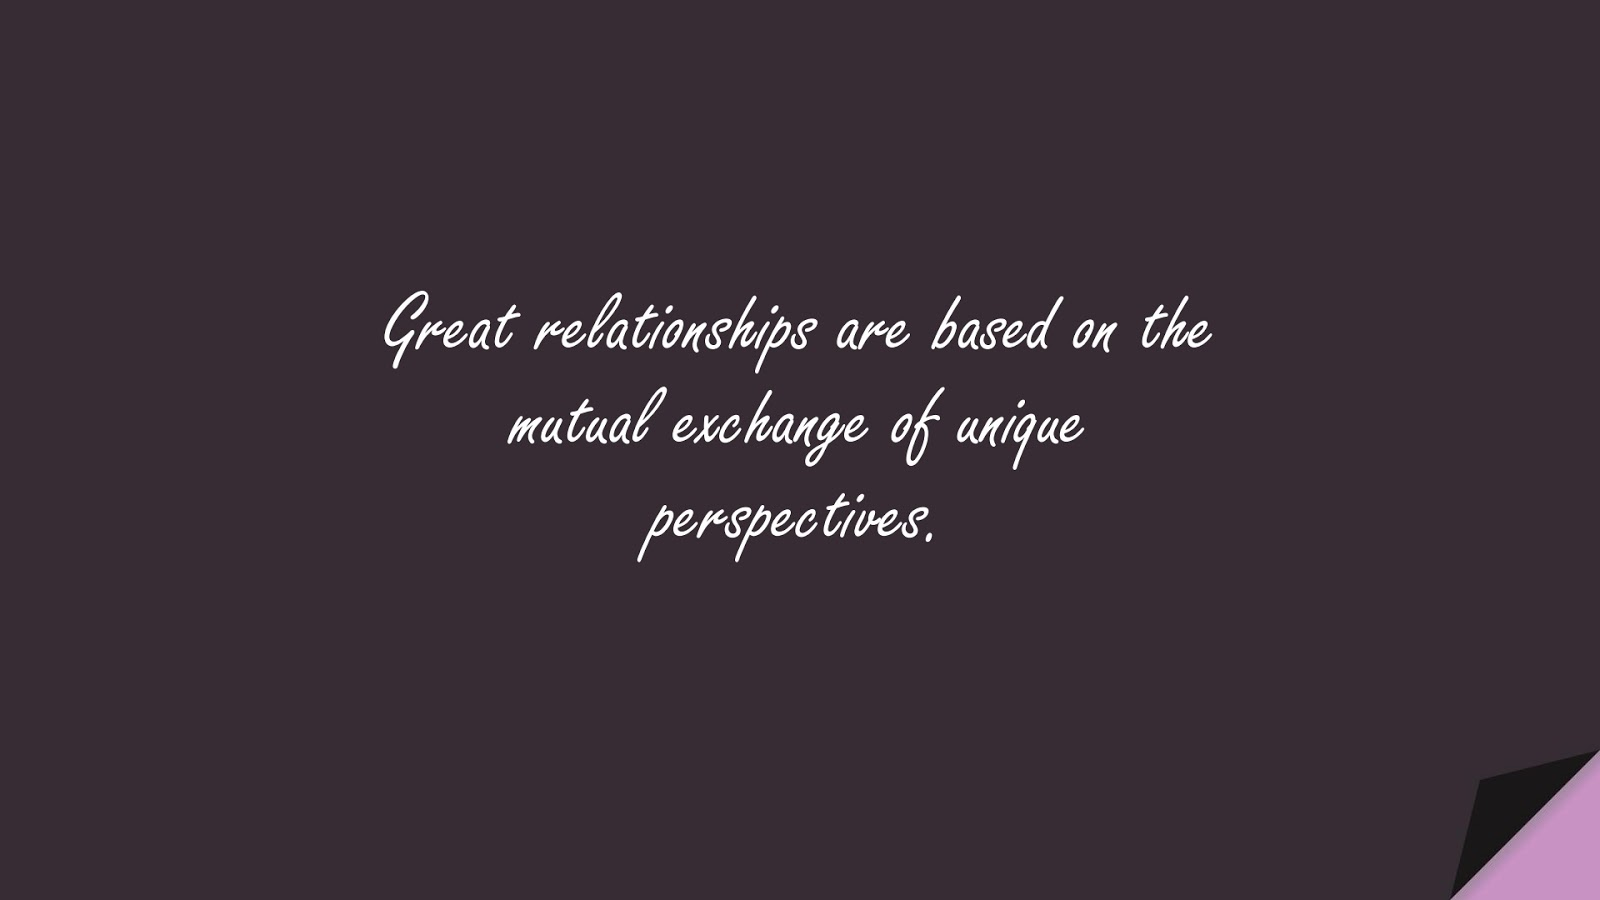 Great relationships are based on the mutual exchange of unique perspectives.FALSE